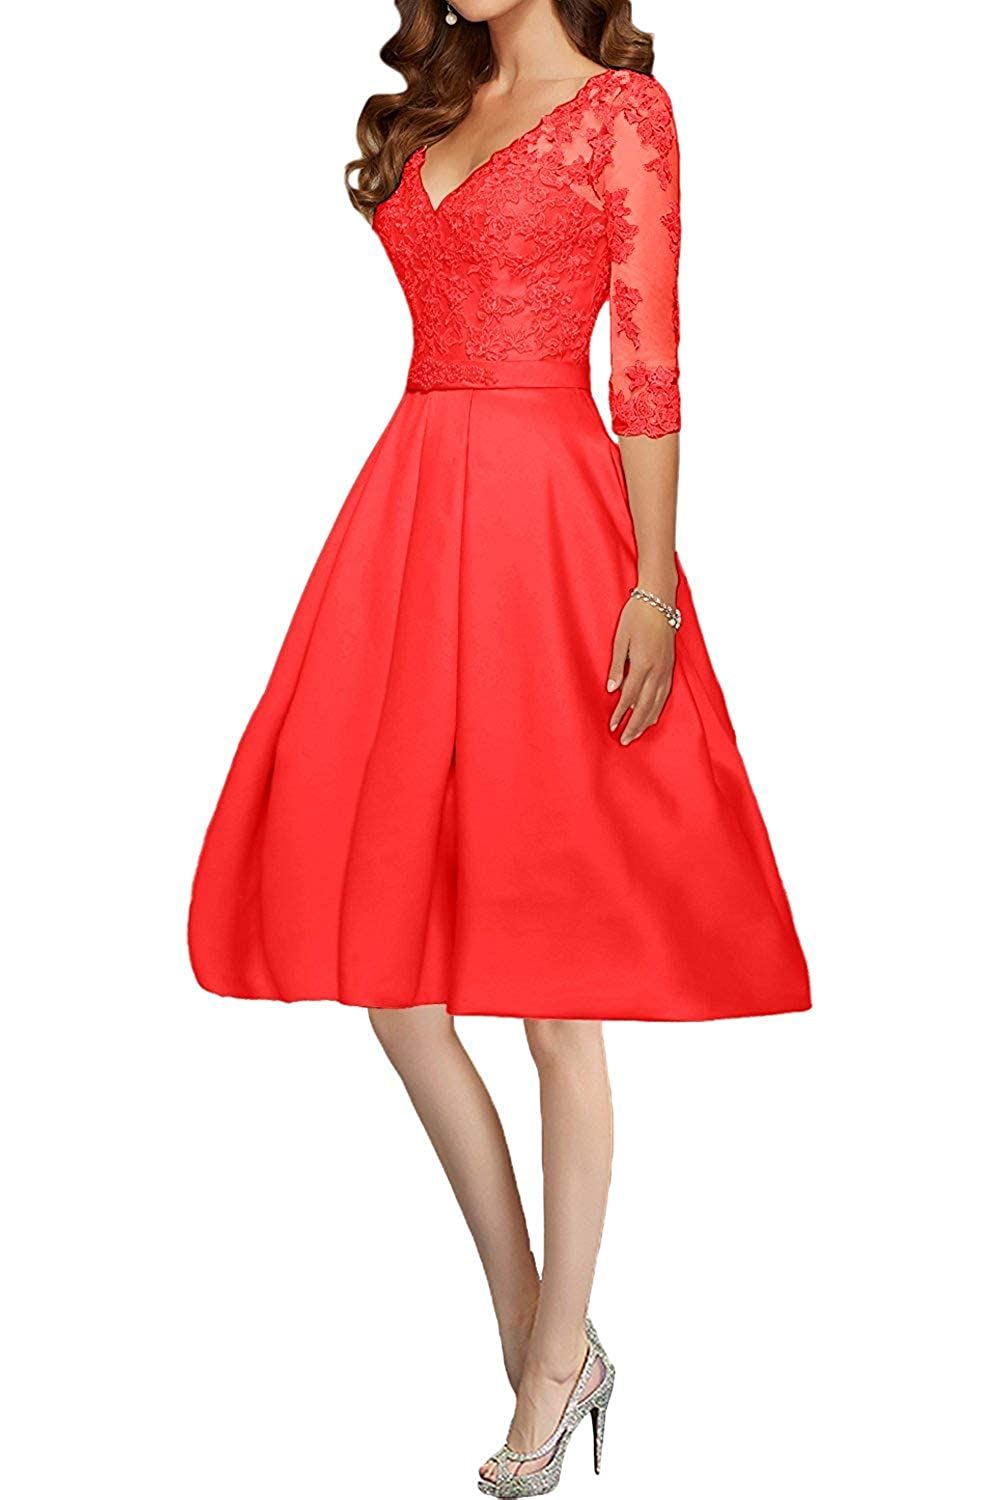 Red ZLQQ Vintage Satin Applique Short Bridesmaid Dresses Half Sleeves Formal Evening Wedding Gown